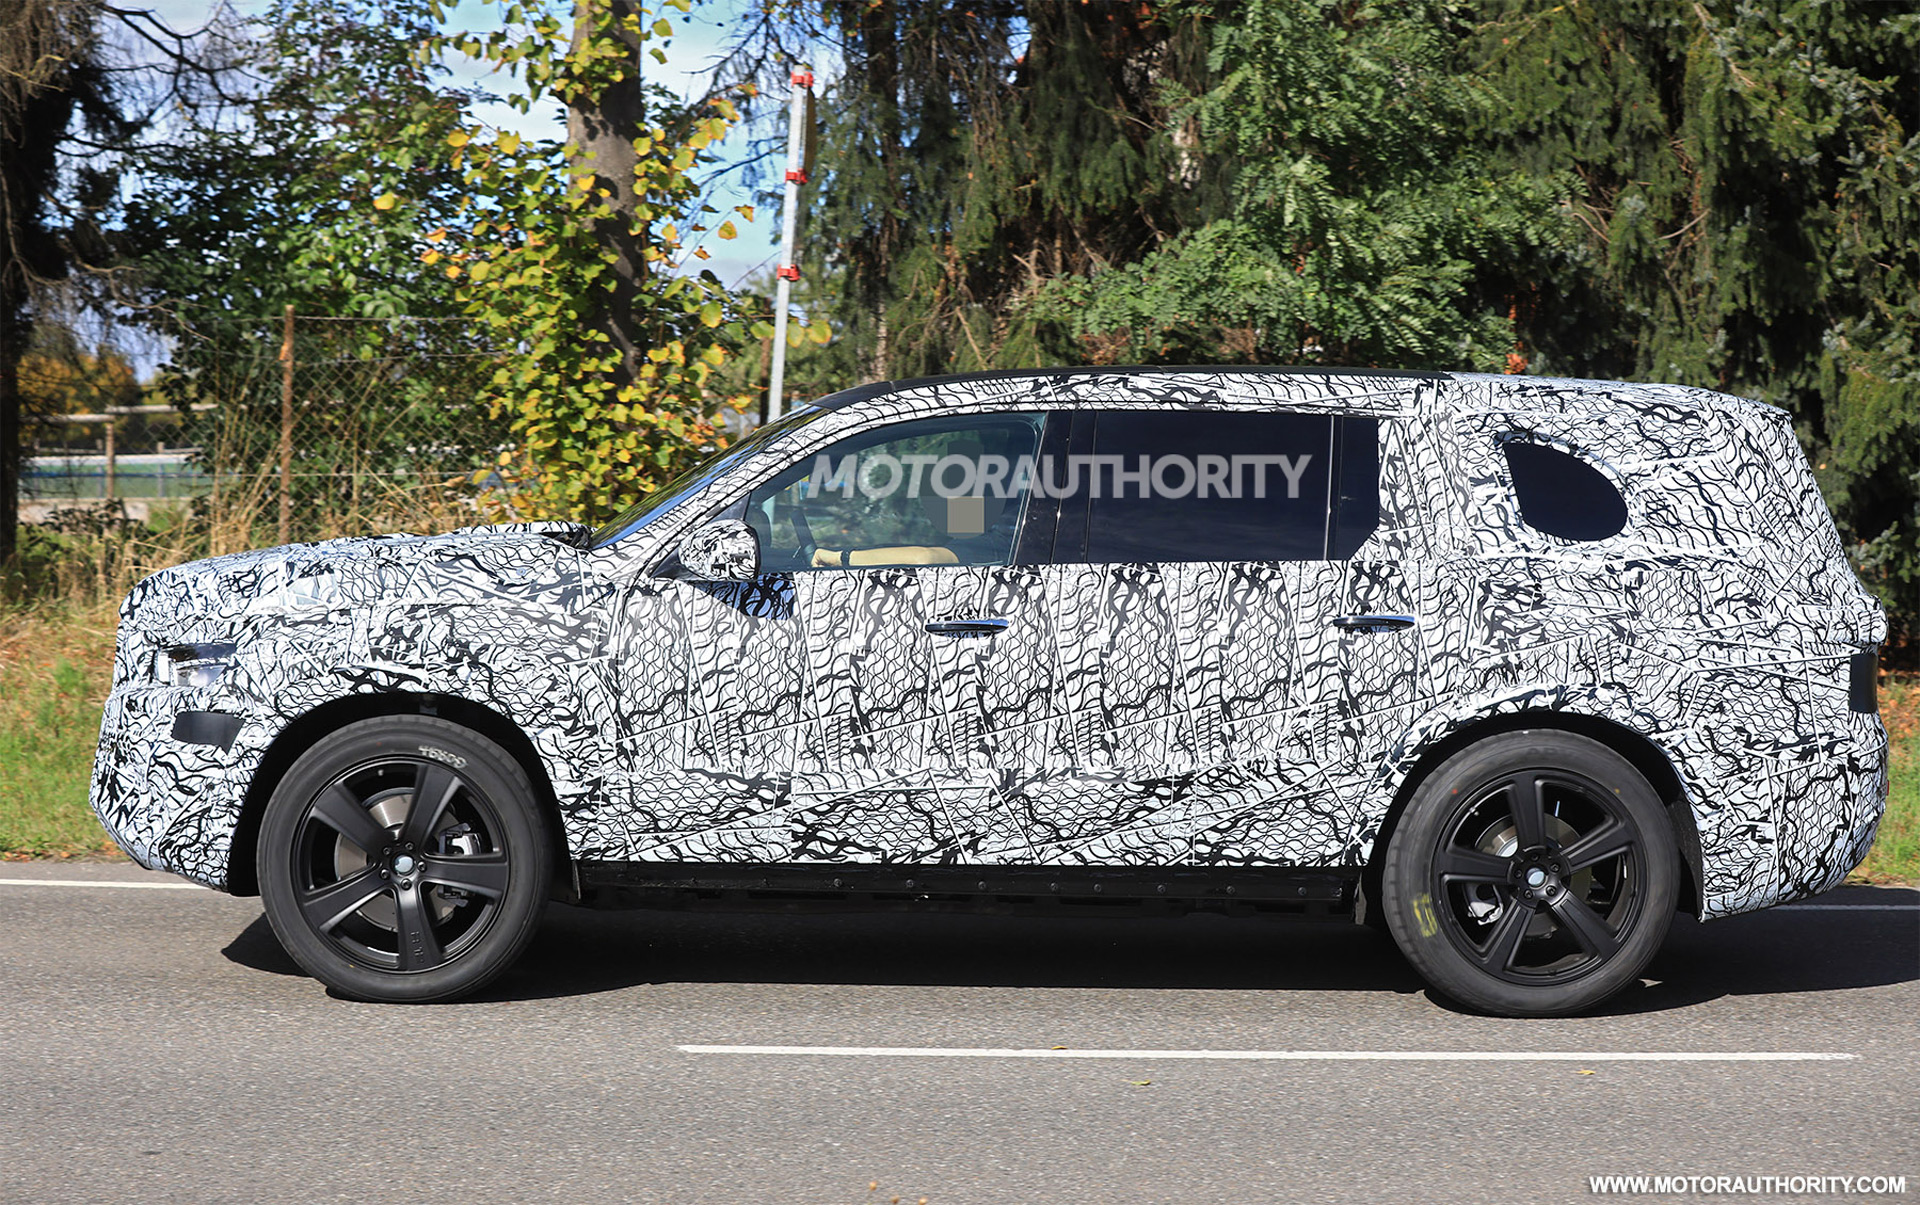 Land Rover Los Angeles >> Mercedes-Benz GLS spied, GM modular platform revealed, Honda Civic Si tested: Car News Headlines